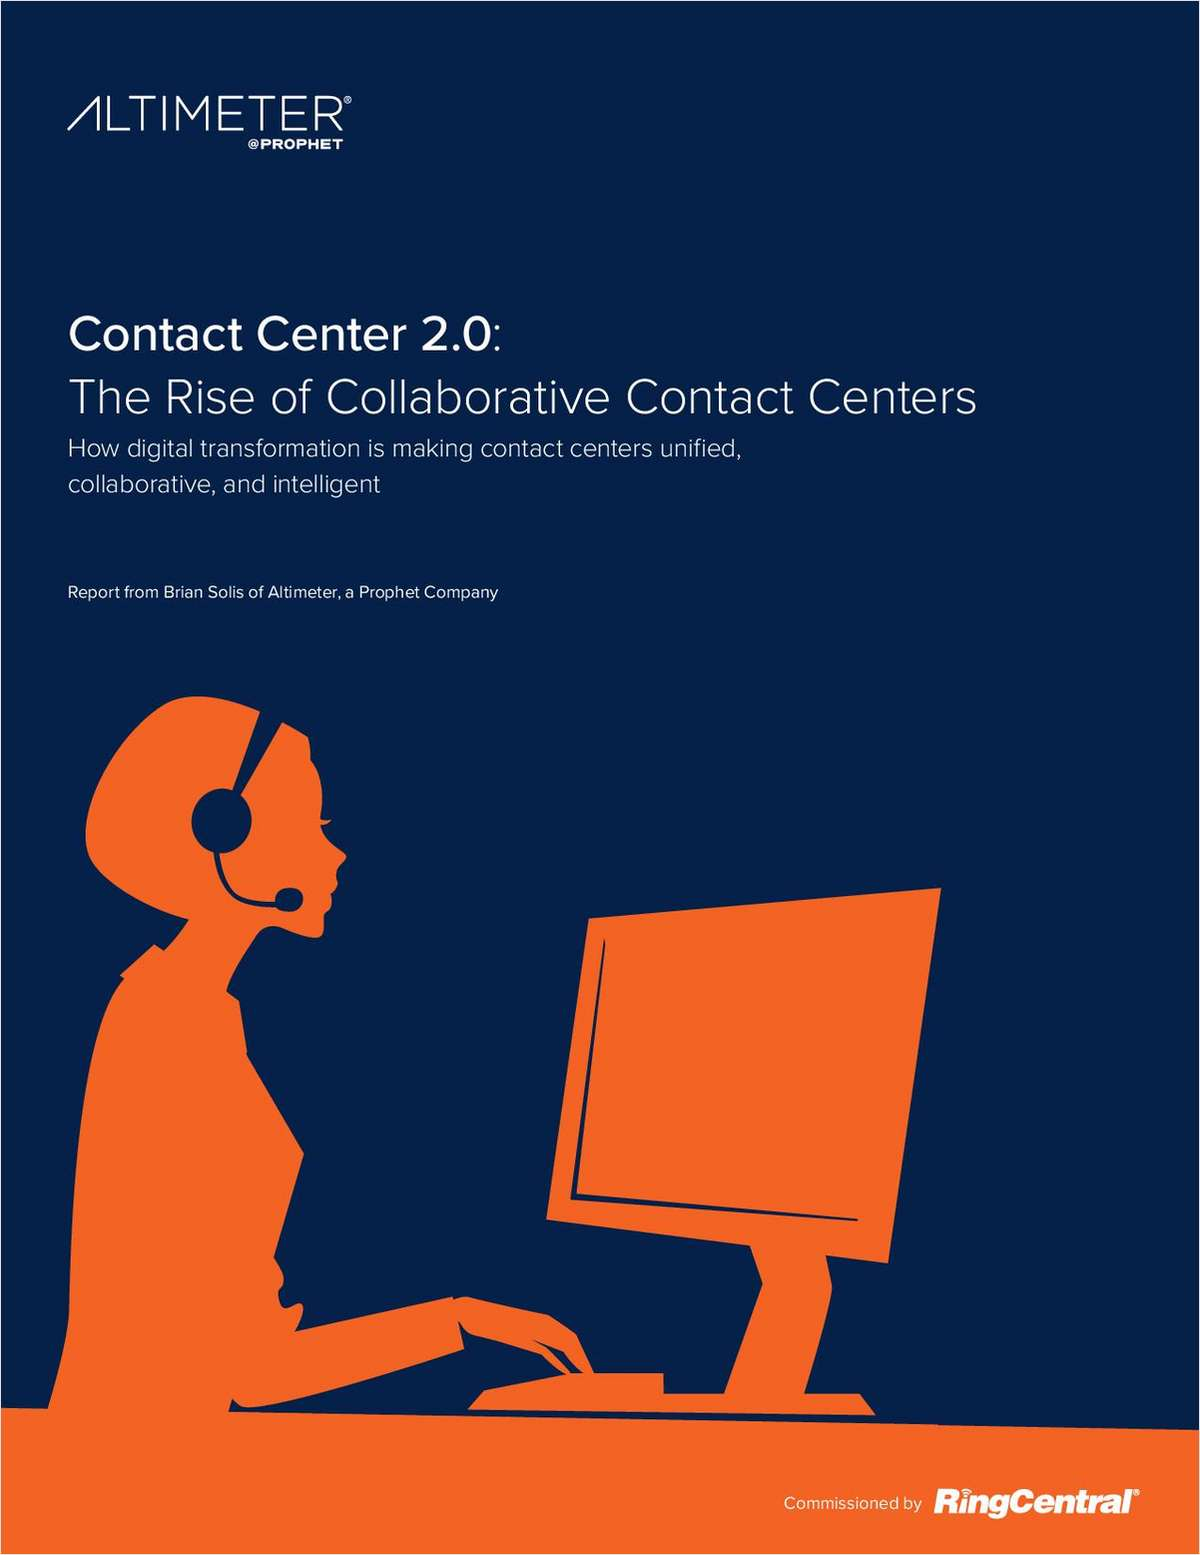 Contact Center 2.0, The Rise of Collaborative Contact Centers